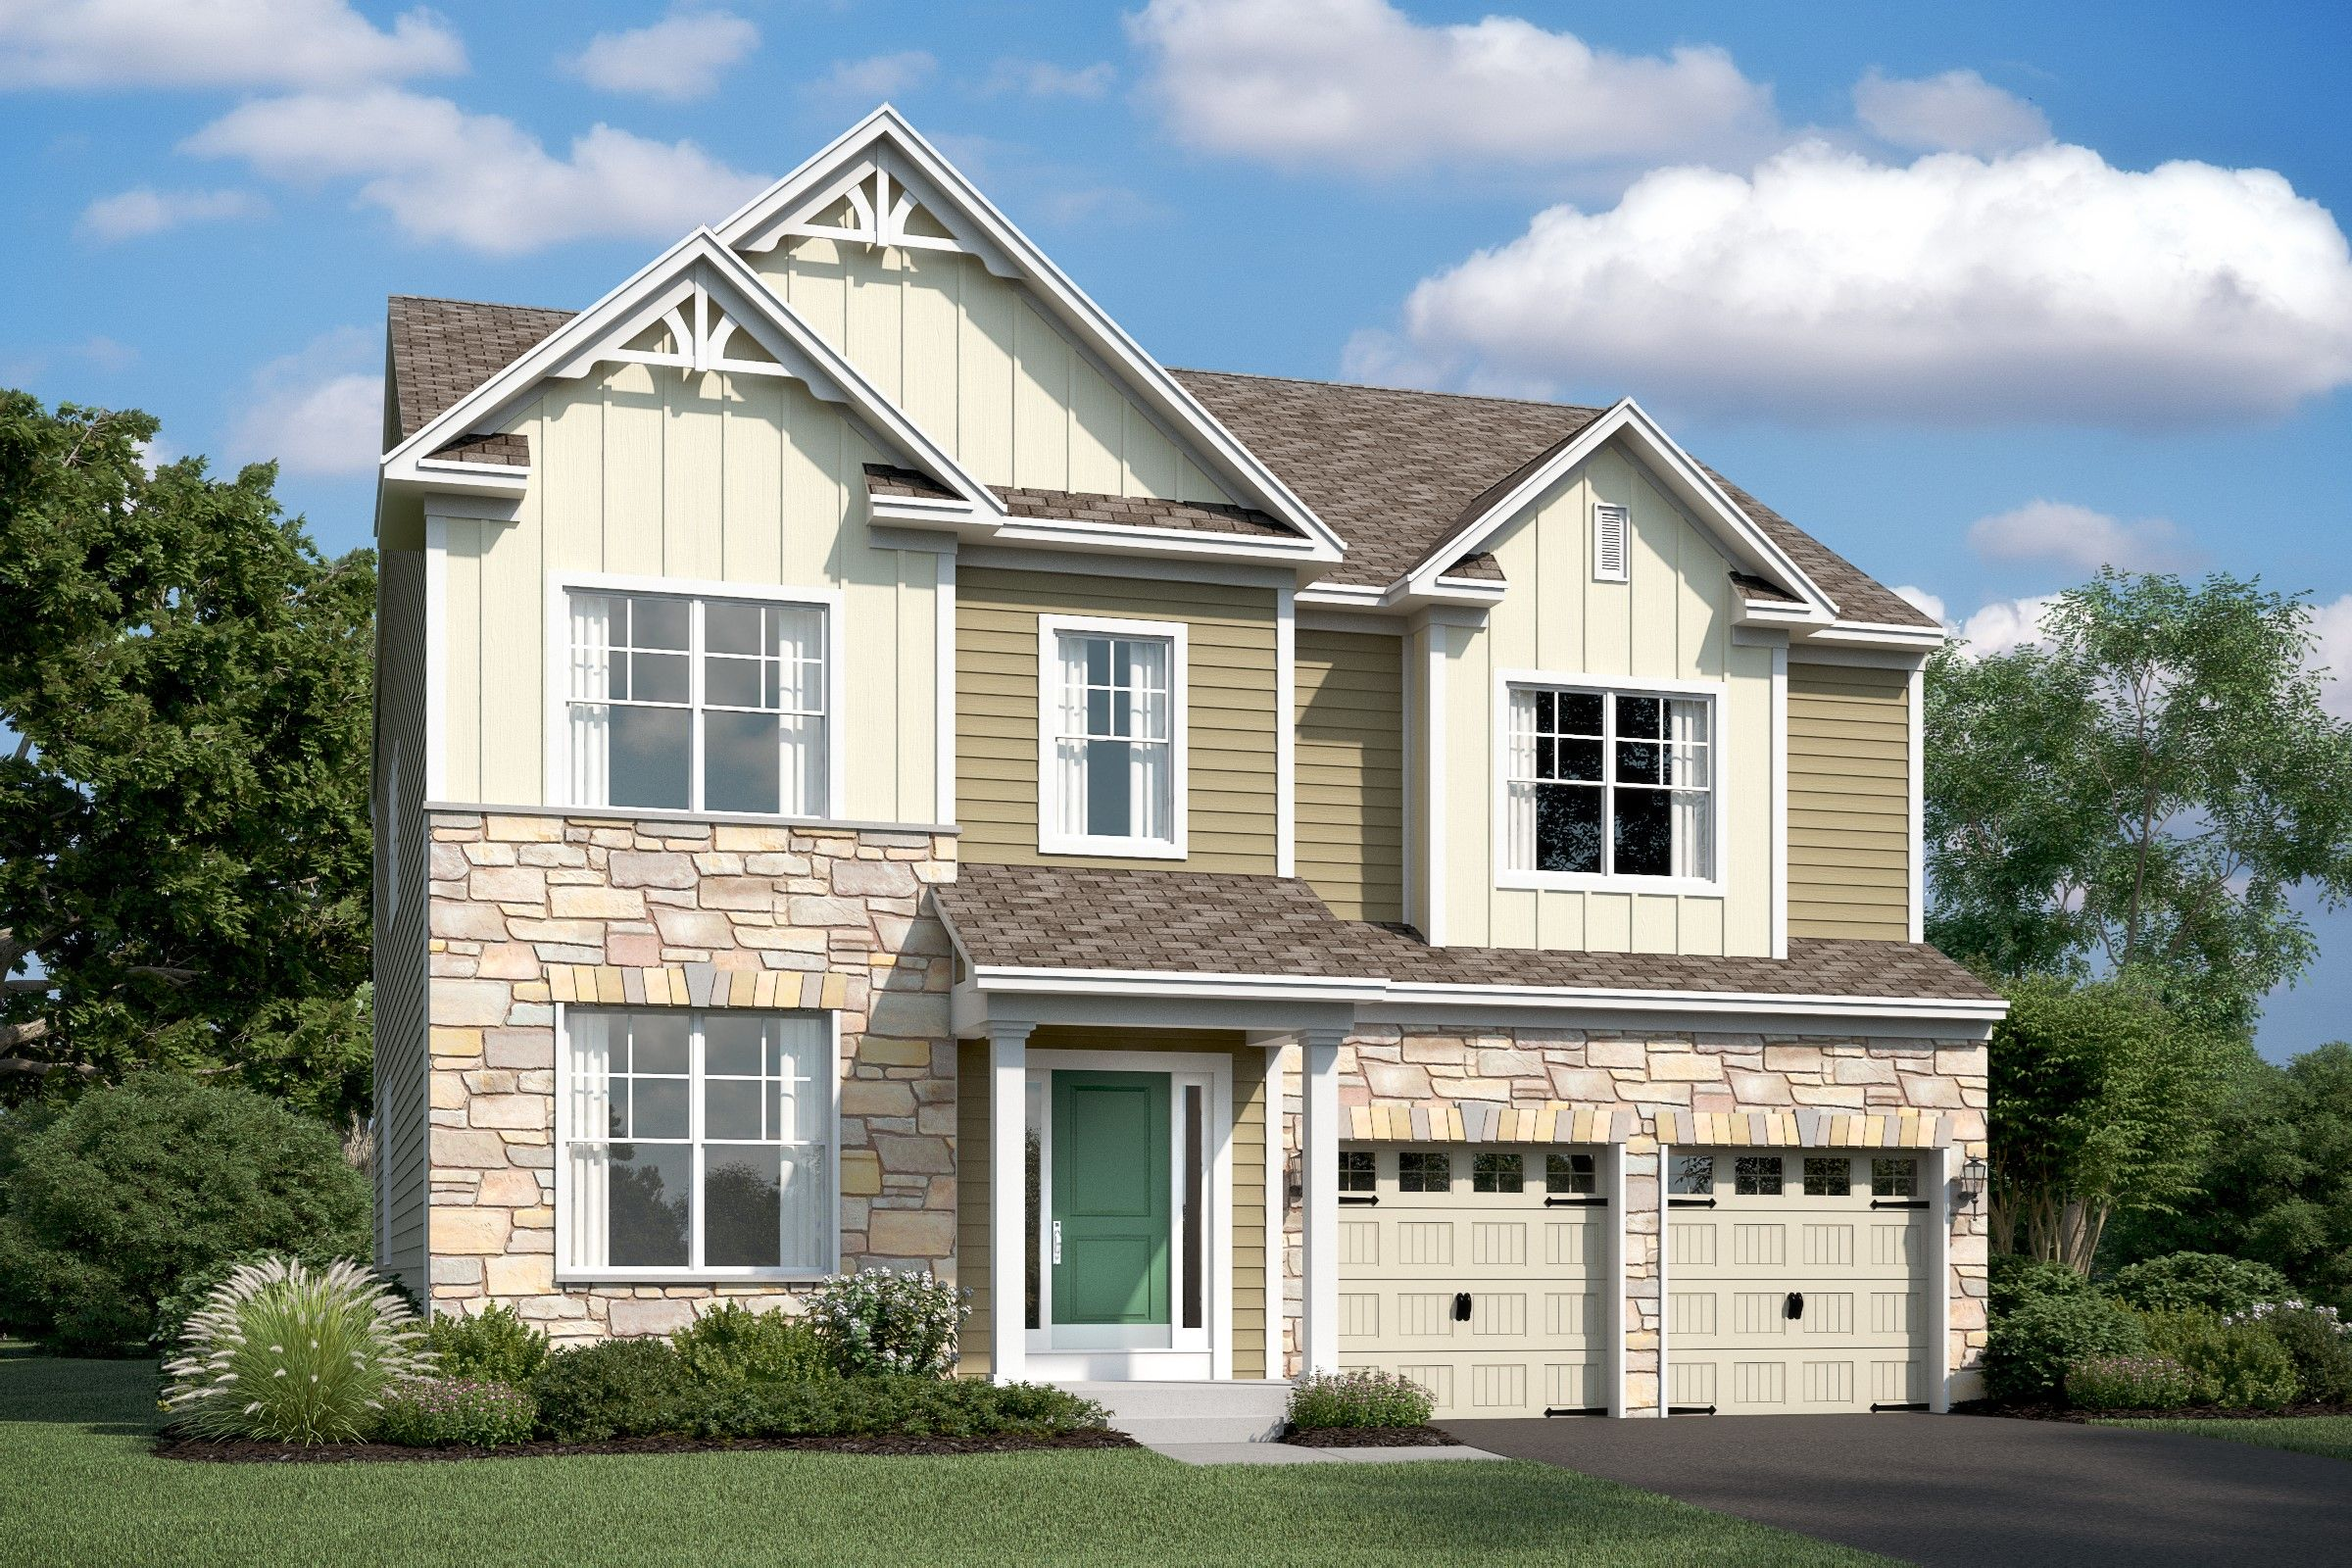 Single Family for Active at Eden Terrace - Callahan Ii 110 Forest Avenue Catonsville, Maryland 21228 United States